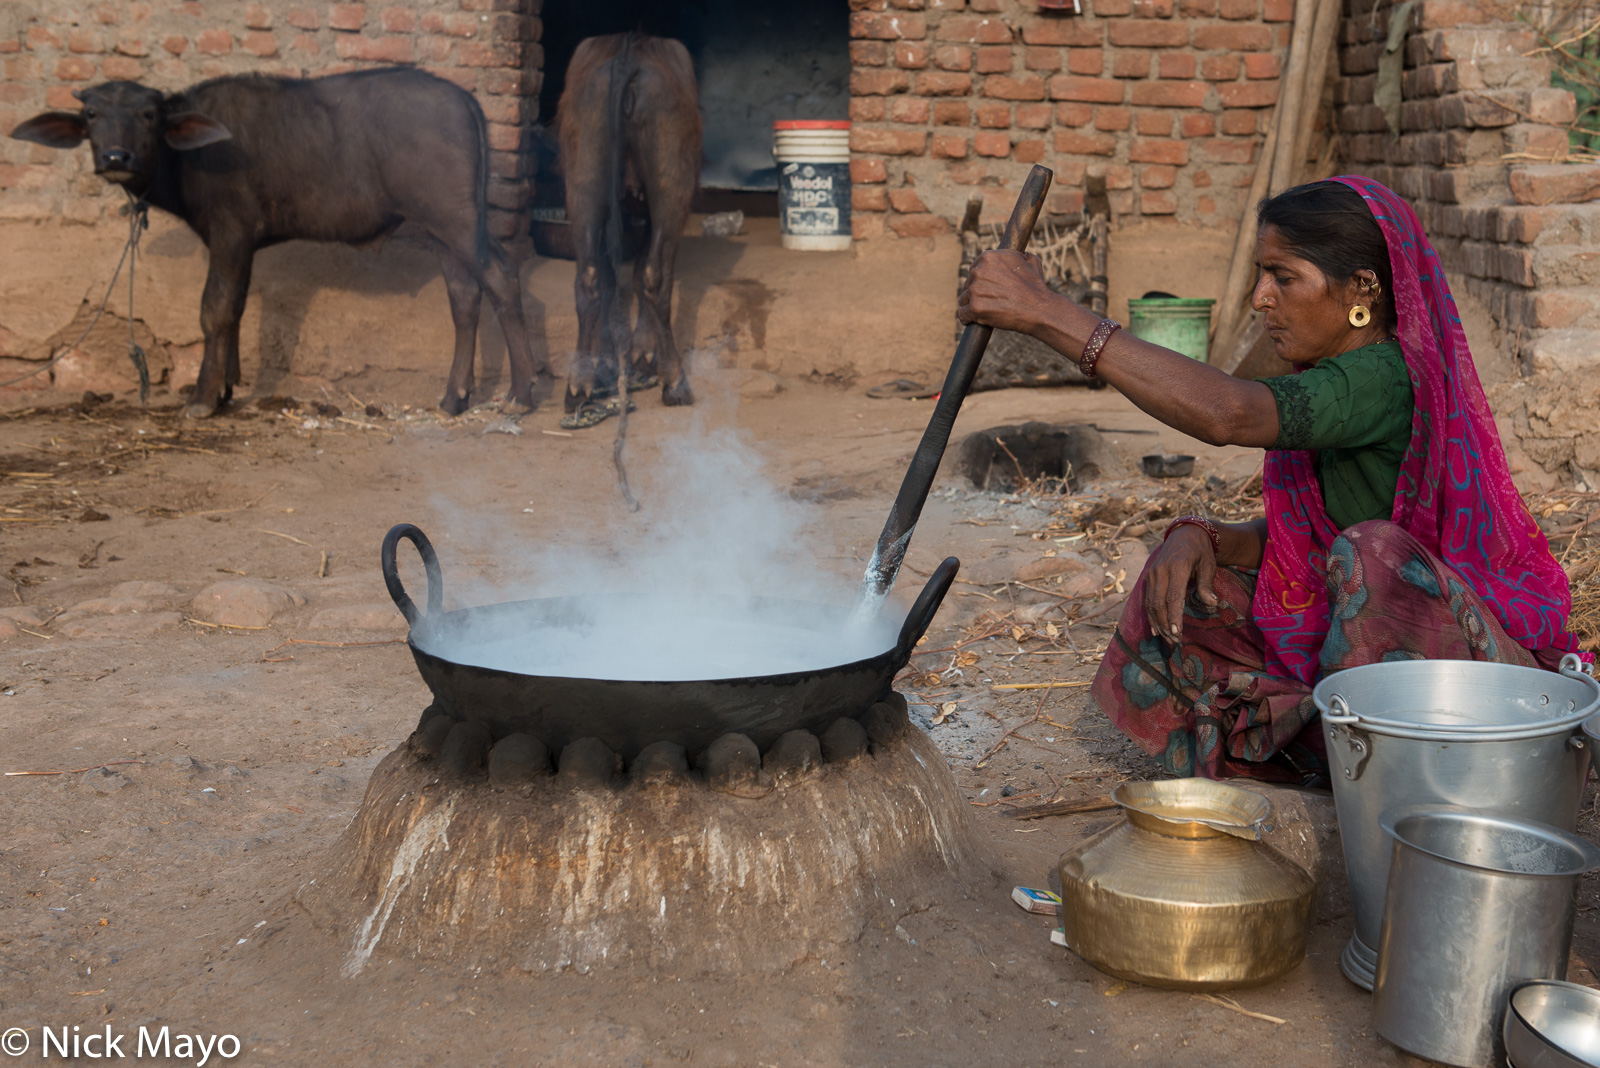 Bracelet, Cow, Earring, Gujarat, Head Scarf, Hearth, India, Wok, photo